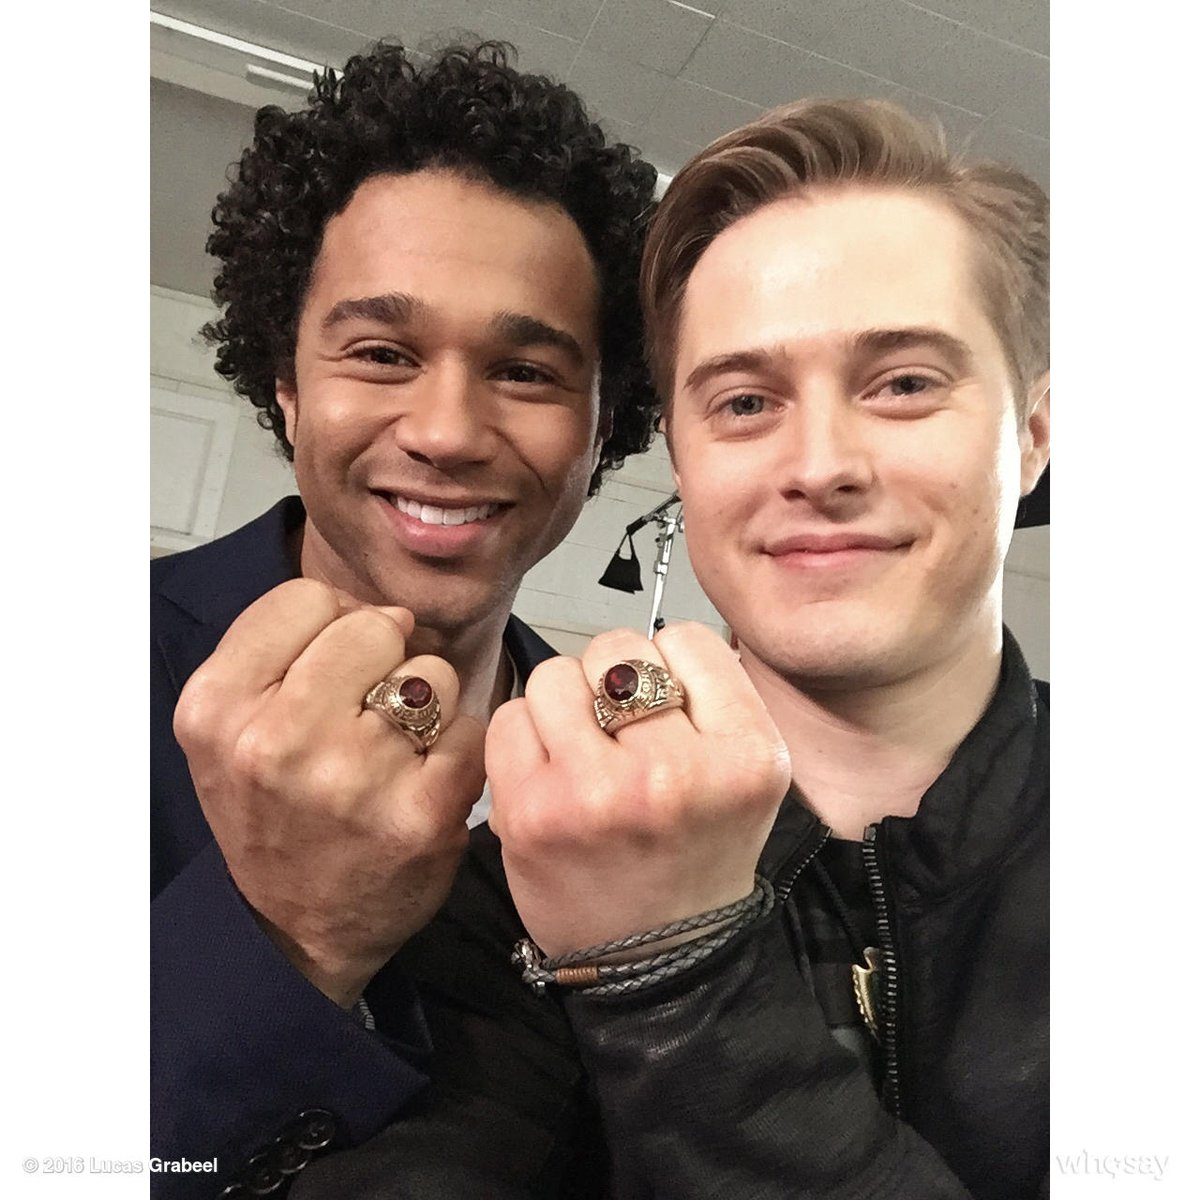 lucas grabeel on twitter quotwearing our hsm class rings to